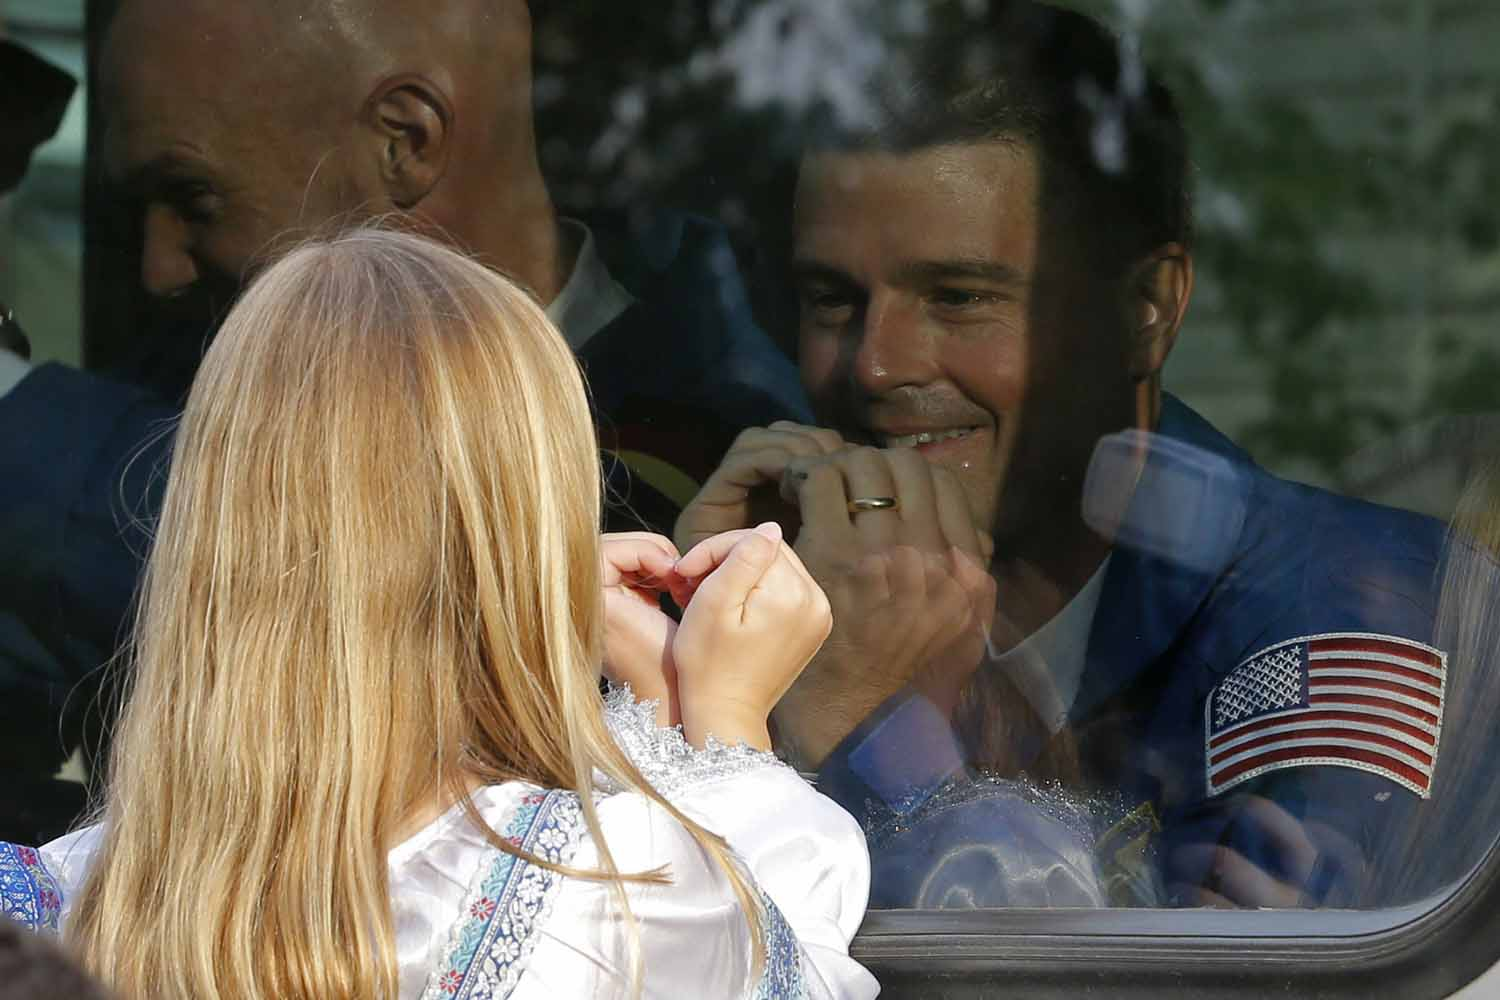 May 28, 2014. NASA astronaut Reid Wiseman, crew member of the mission to the International Space Station, ISS, gestures with his daughter, from a bus as they leave from a hotel prior the launch of Soyuz-FG rocket at the Russian leased Baikonur cosmodrome in Kazakhstan.